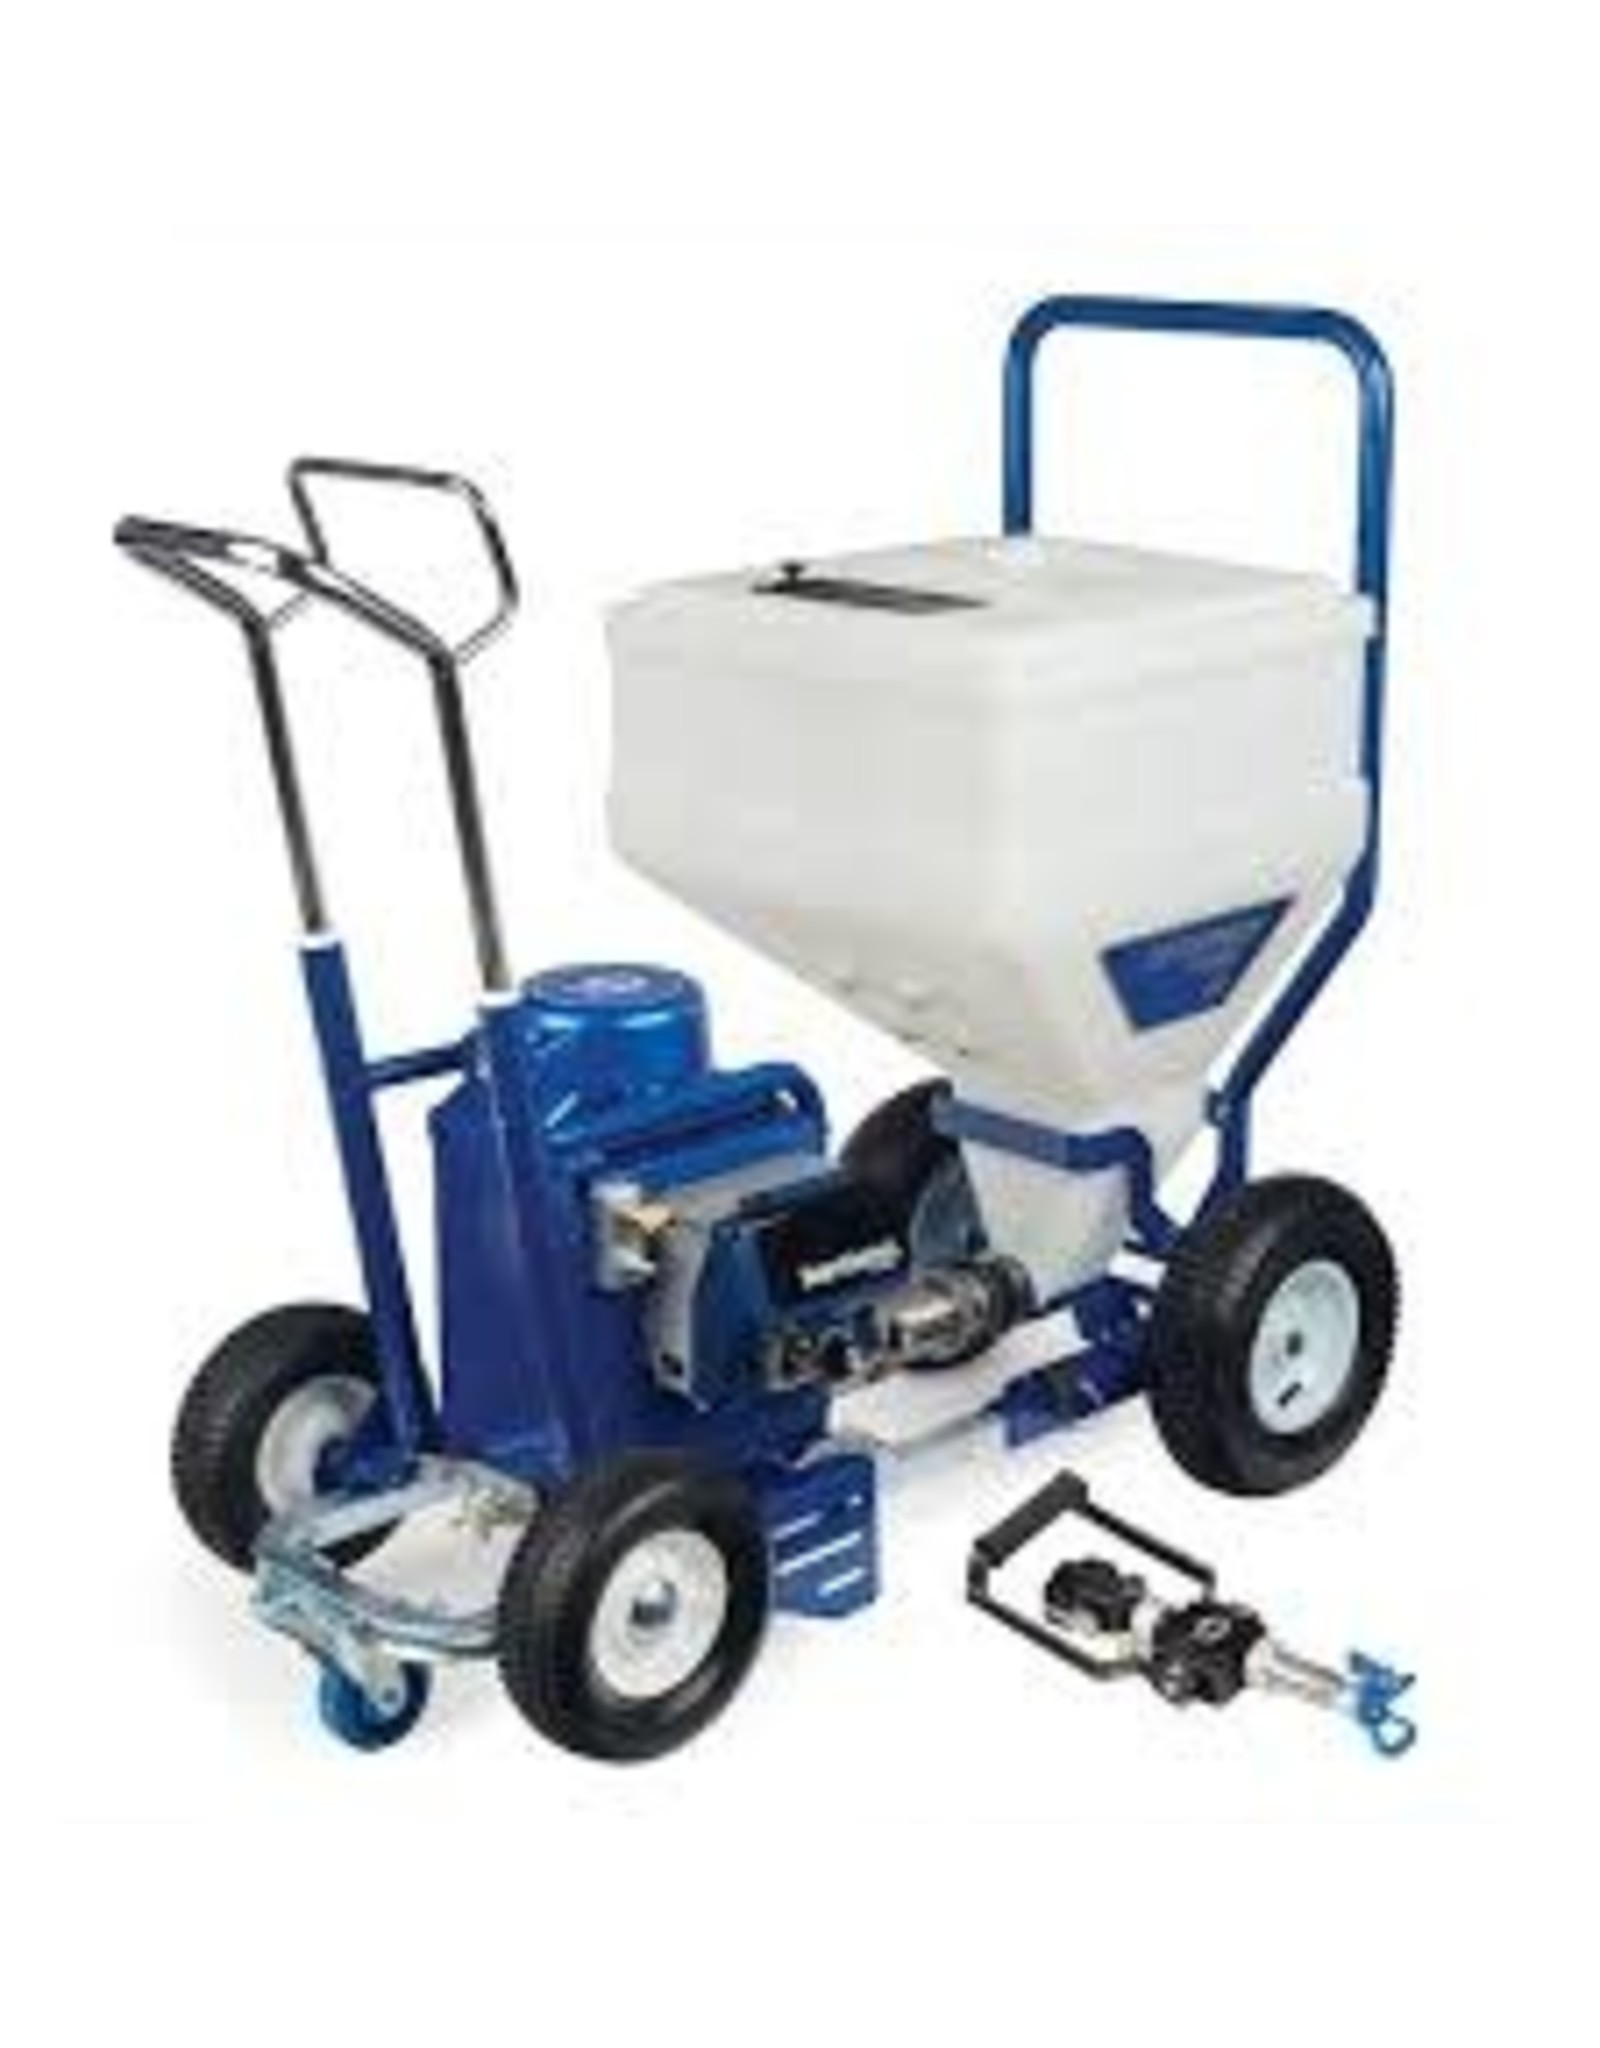 Graco 17Z630 T-Max 6912 Texture Sprayer